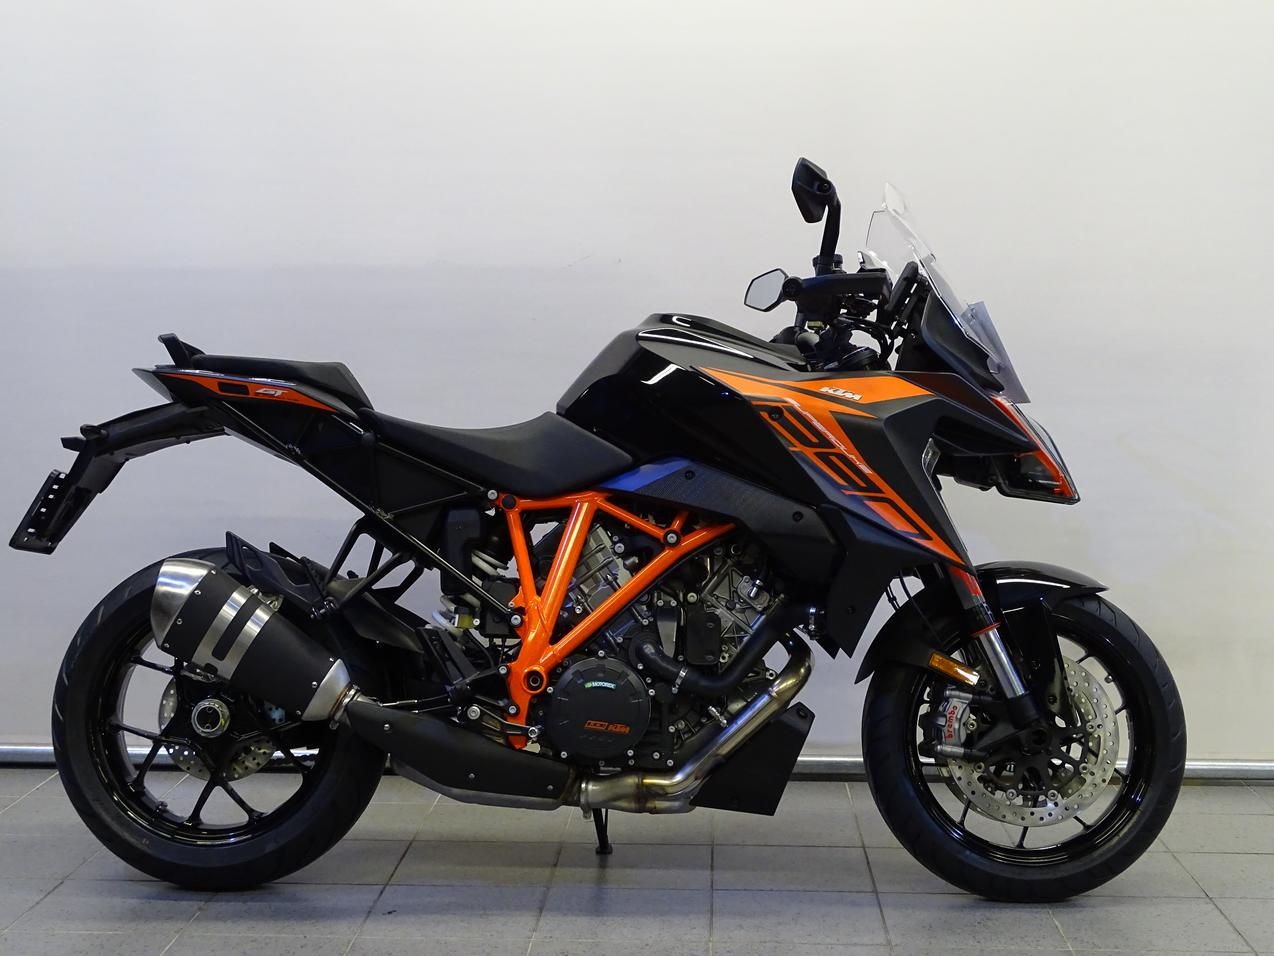 KTM - 1290 SUPERDUKE GT R ABS